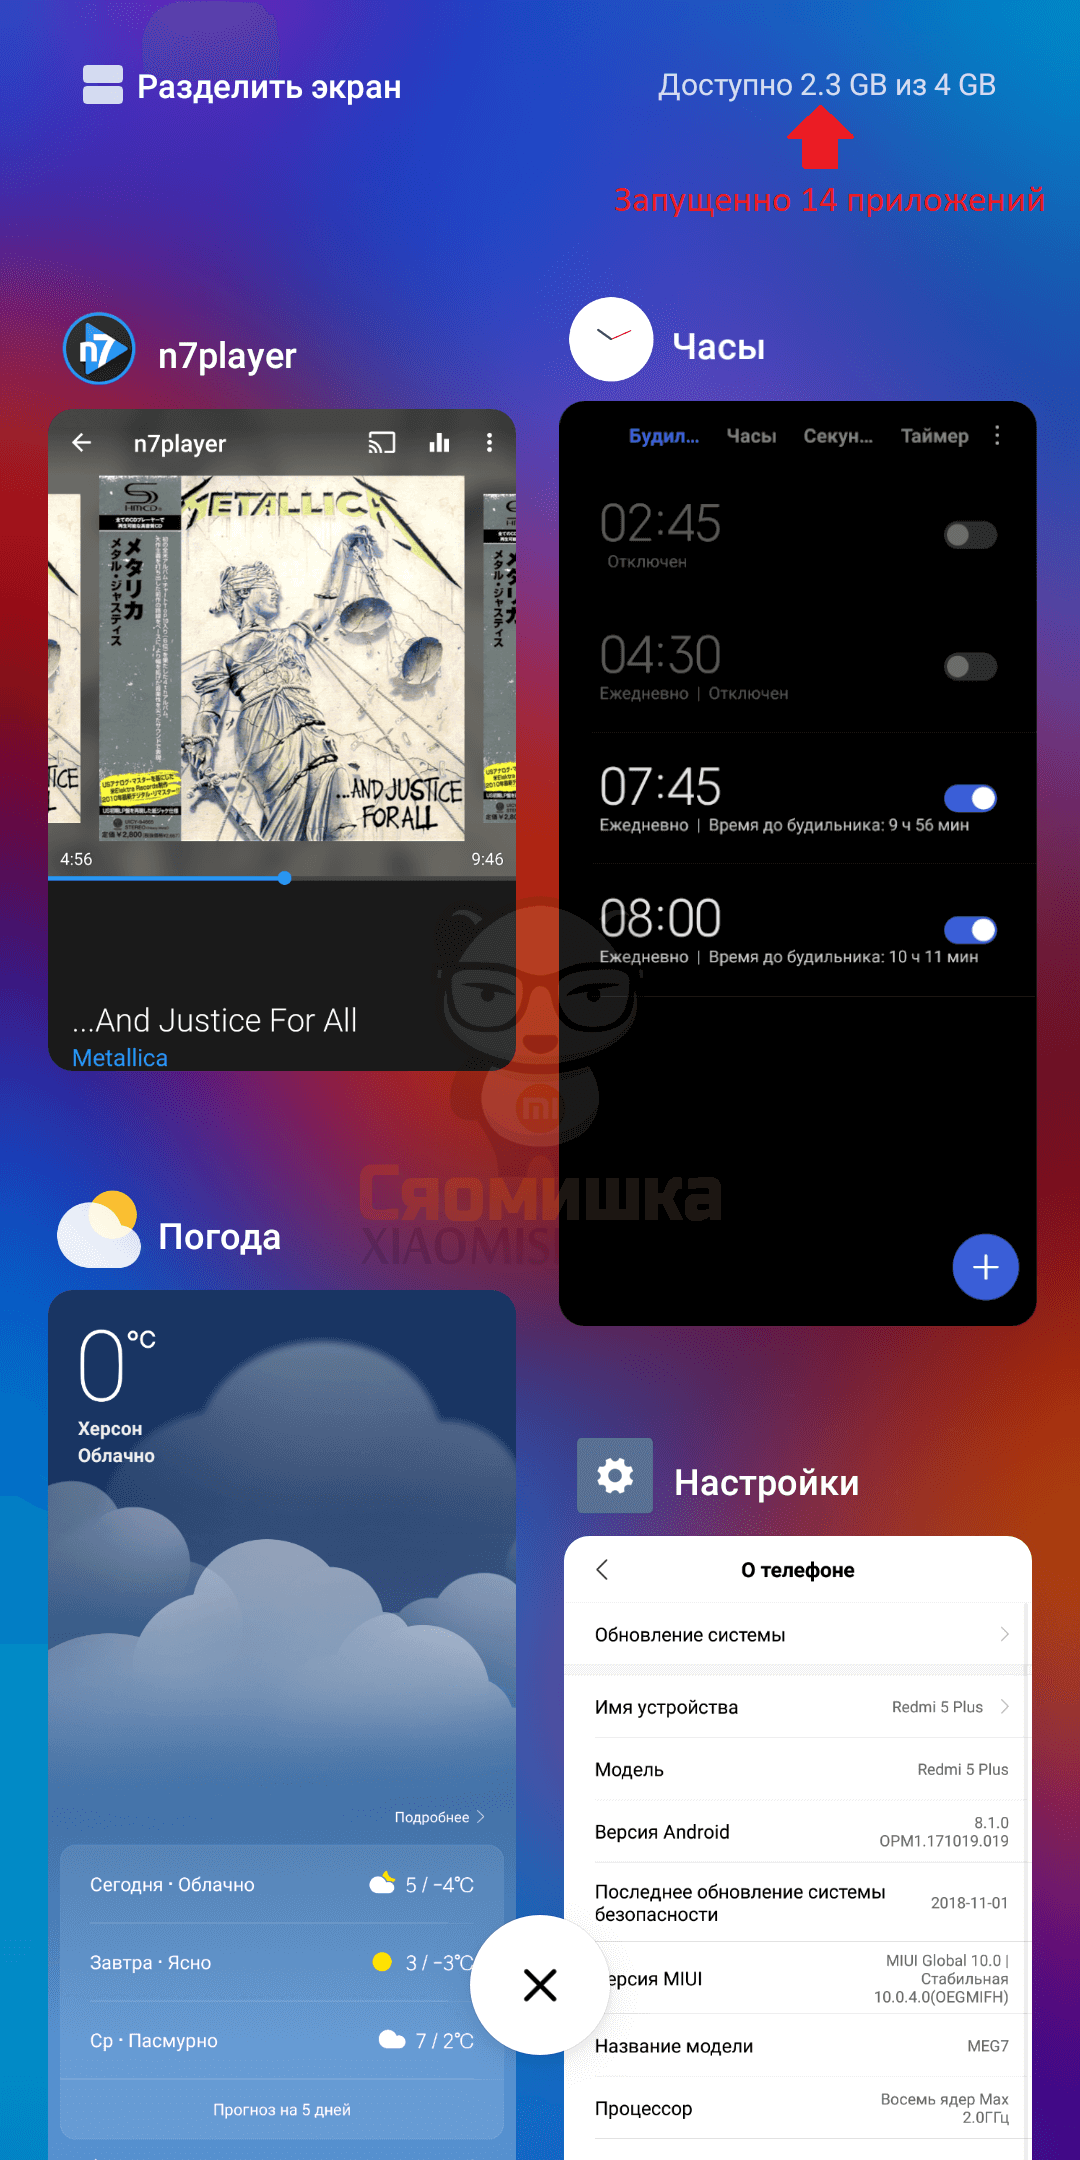 🌈 Download miui 10 0 4 0 redmi 5 plus | Download & Install MIUI ROM